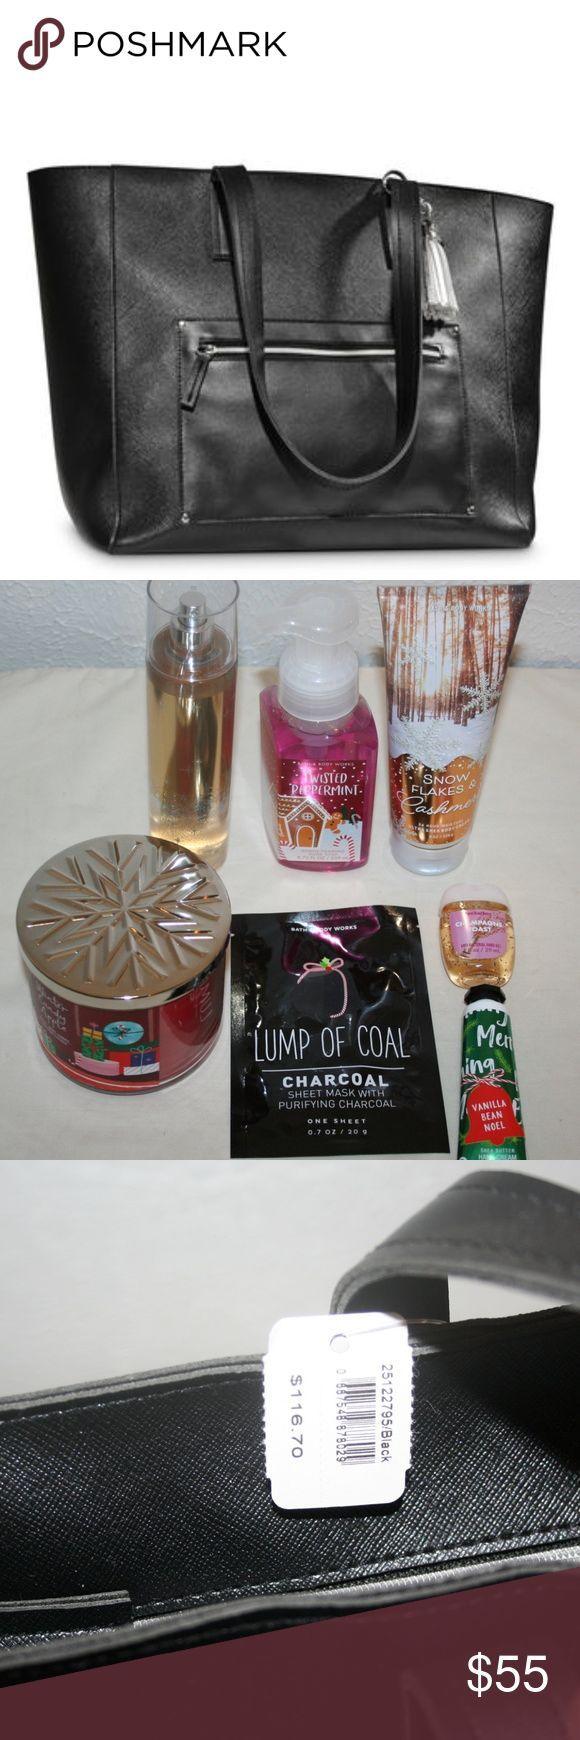 Bath And Body Works Vip Bag Tote With 7 Items New Bath And Body